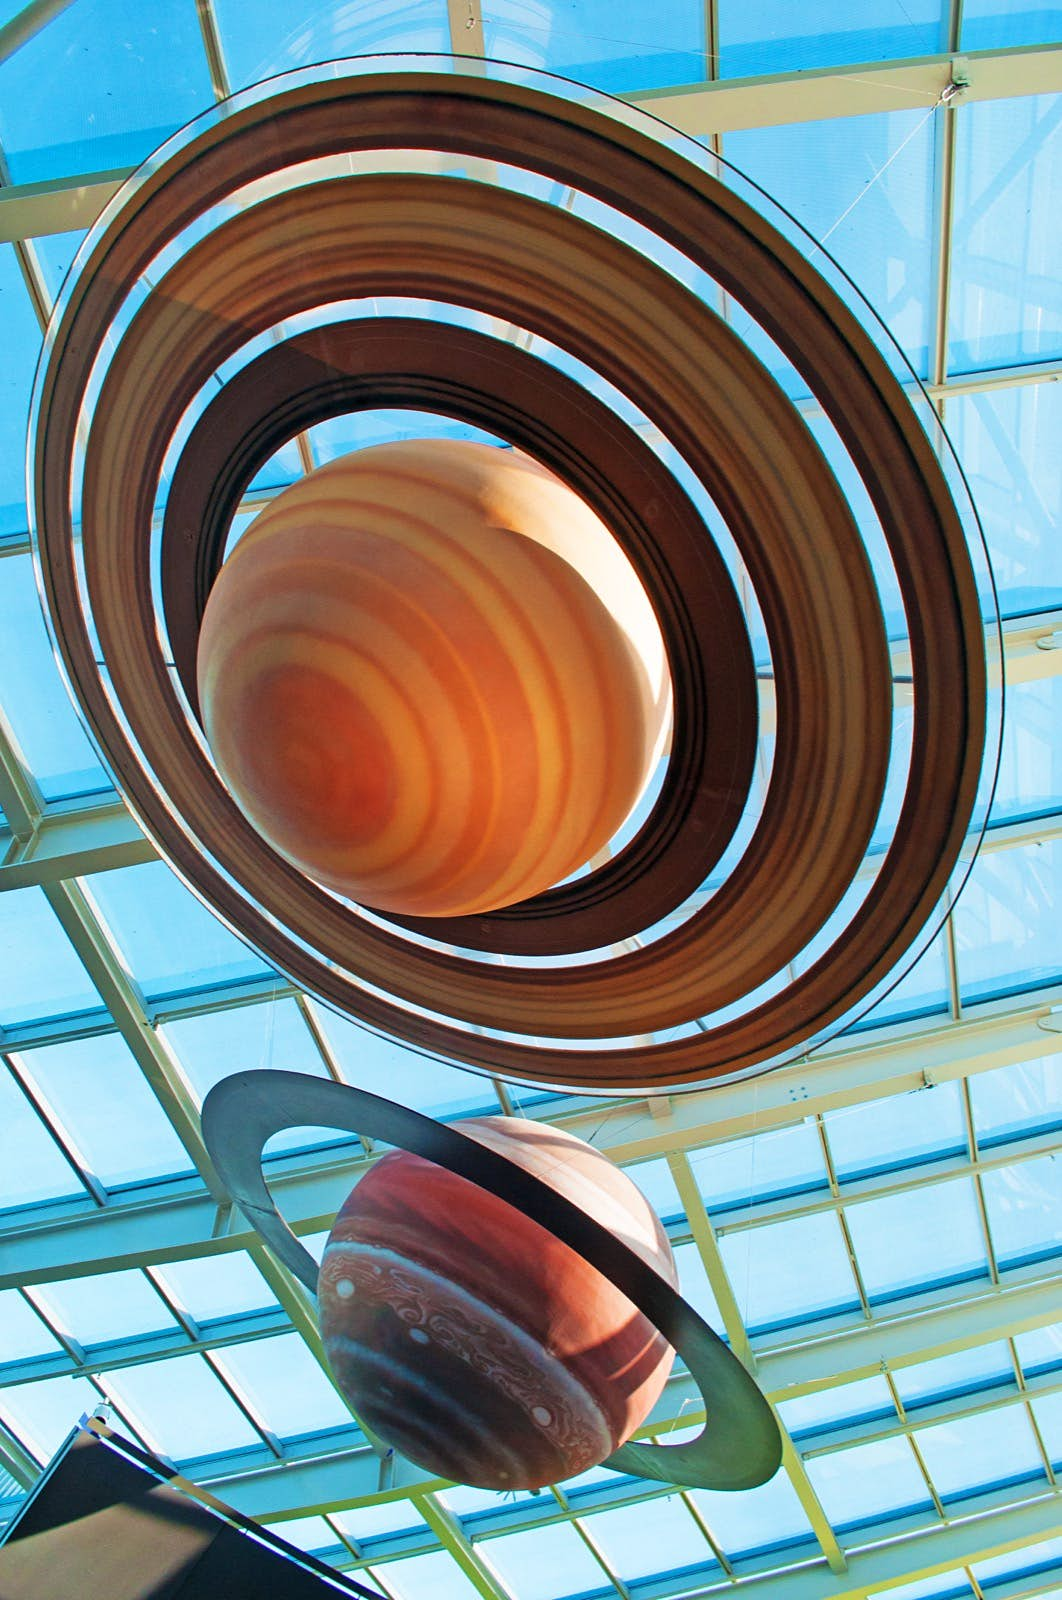 Reconstruction of the solar system at Adler Planetarium. The photos shows two ringed planets, one is orange and yellow with brown rings and the other is red and white with a green ring. The planets are suspended beneath a glass roof through which we can see a clear blue sky; Apollo anniversary experiences